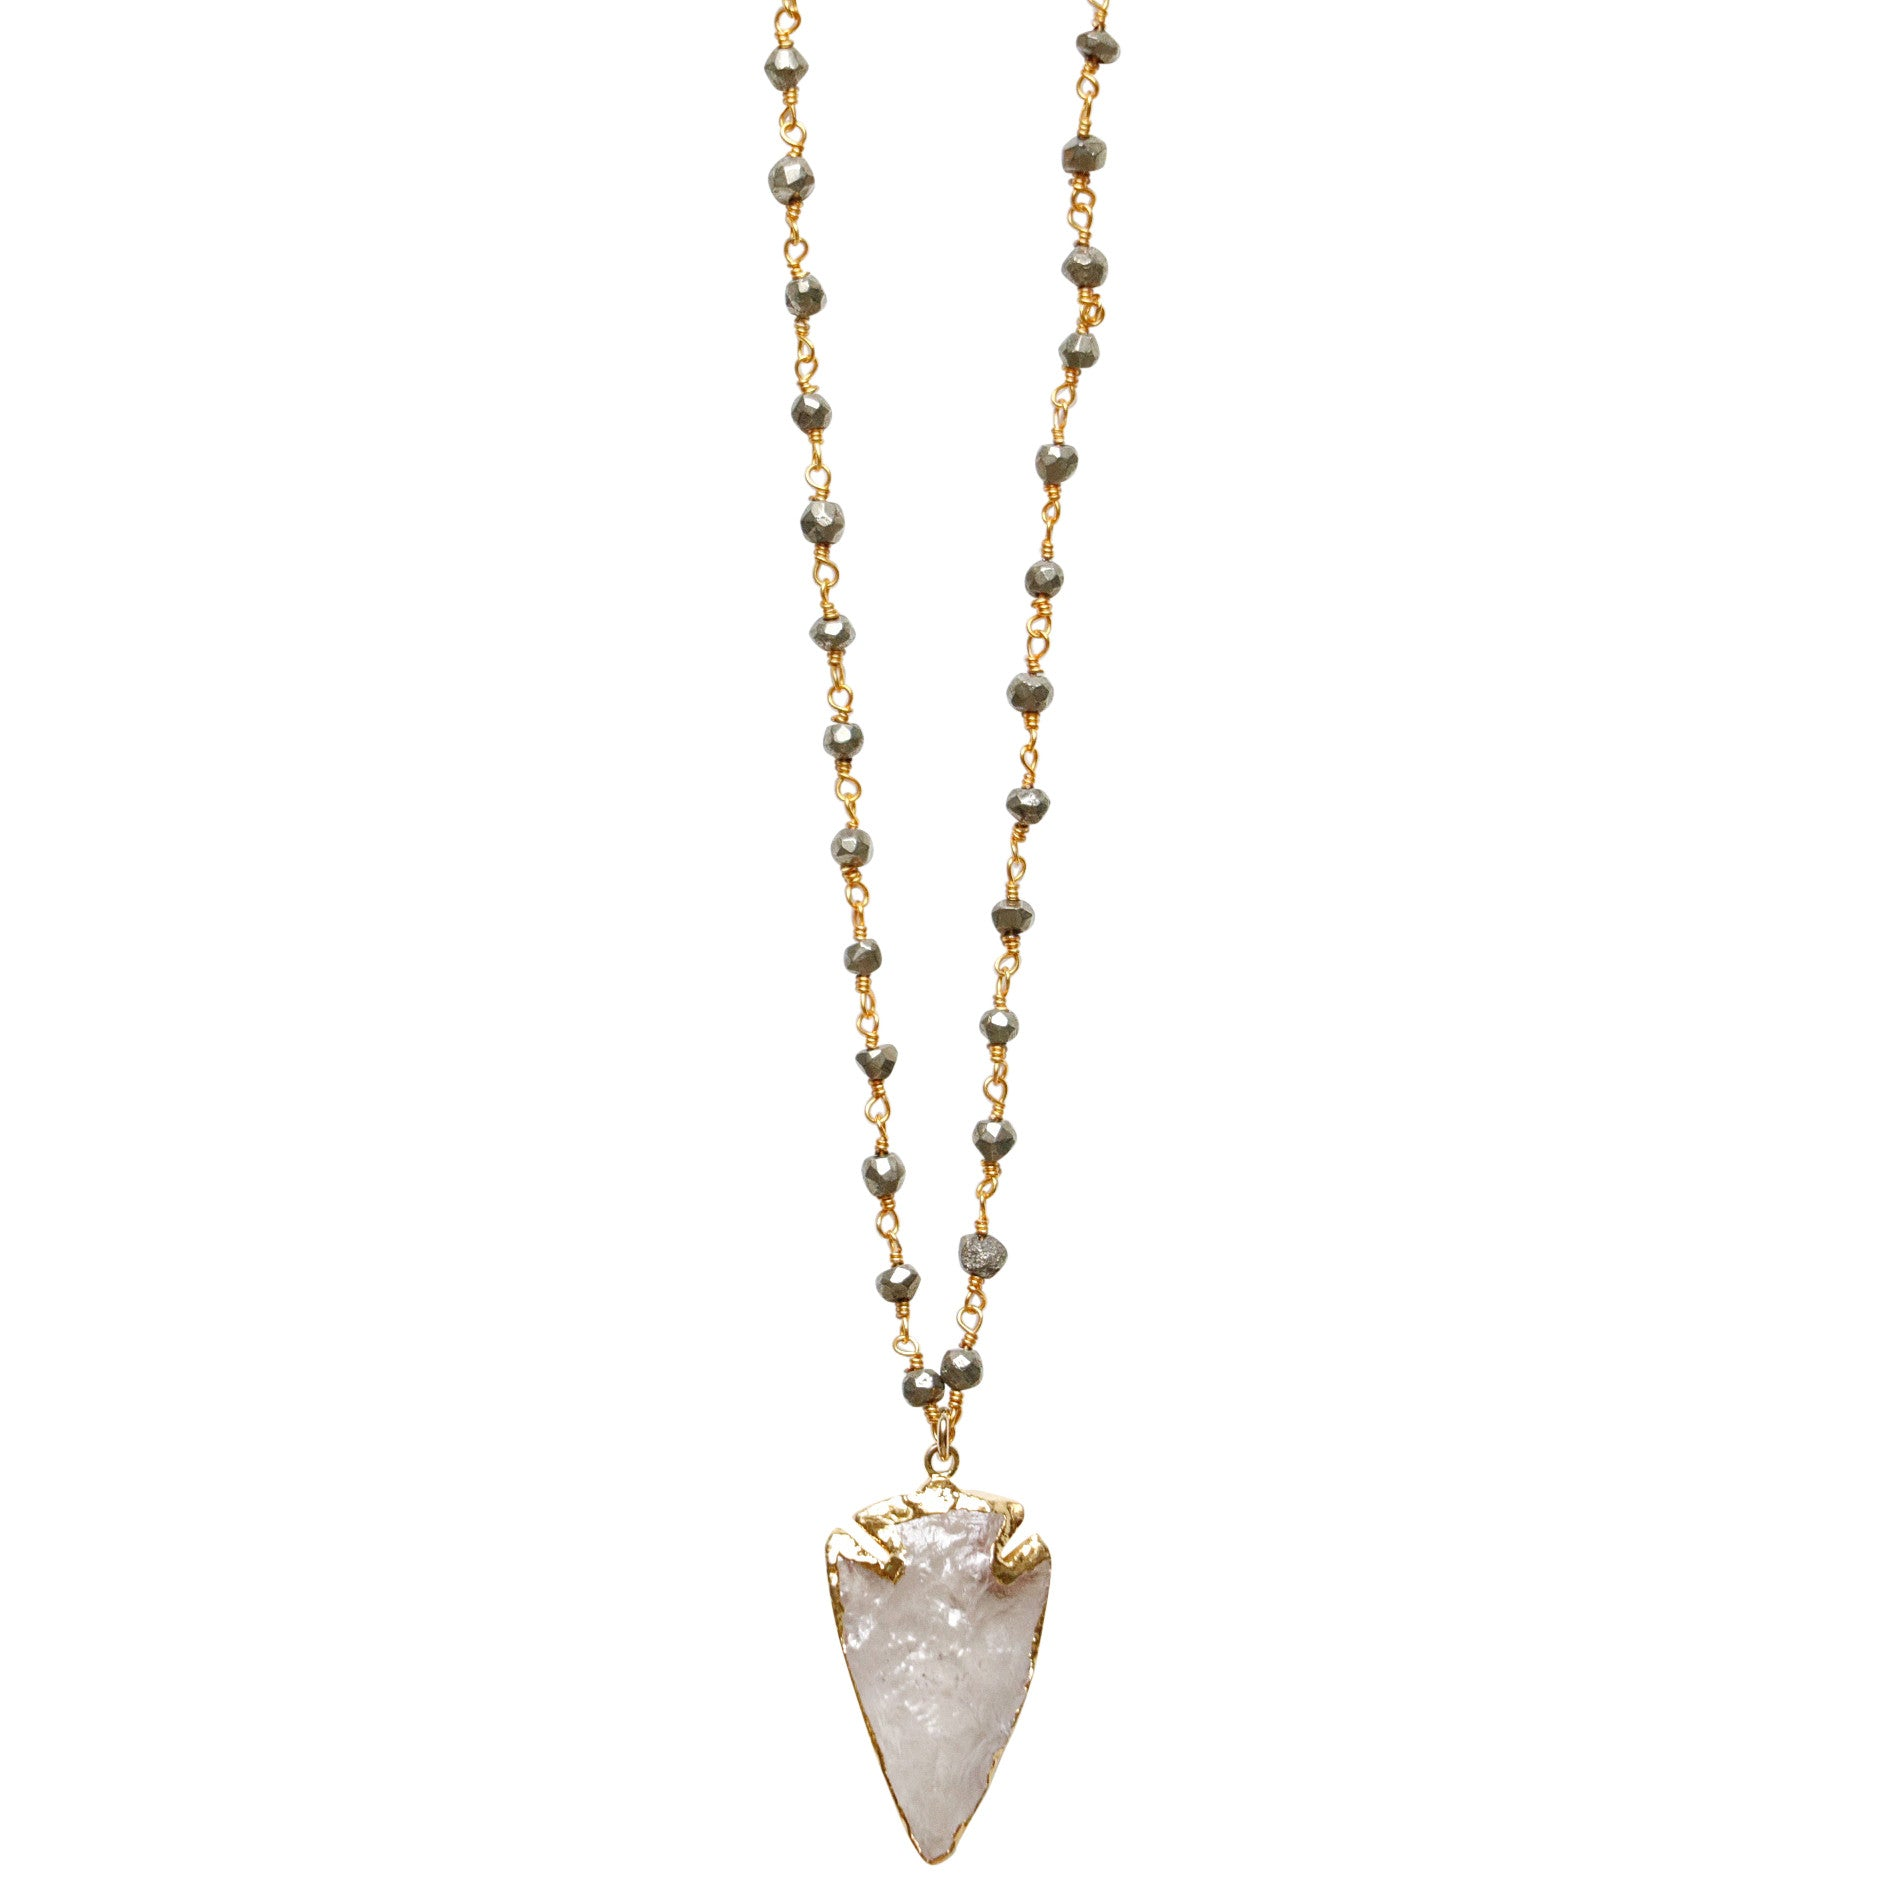 24k Gold dipped Crystal Arrowhead on a 14k Gold Filled Wire-wrapped Pyrite Chain